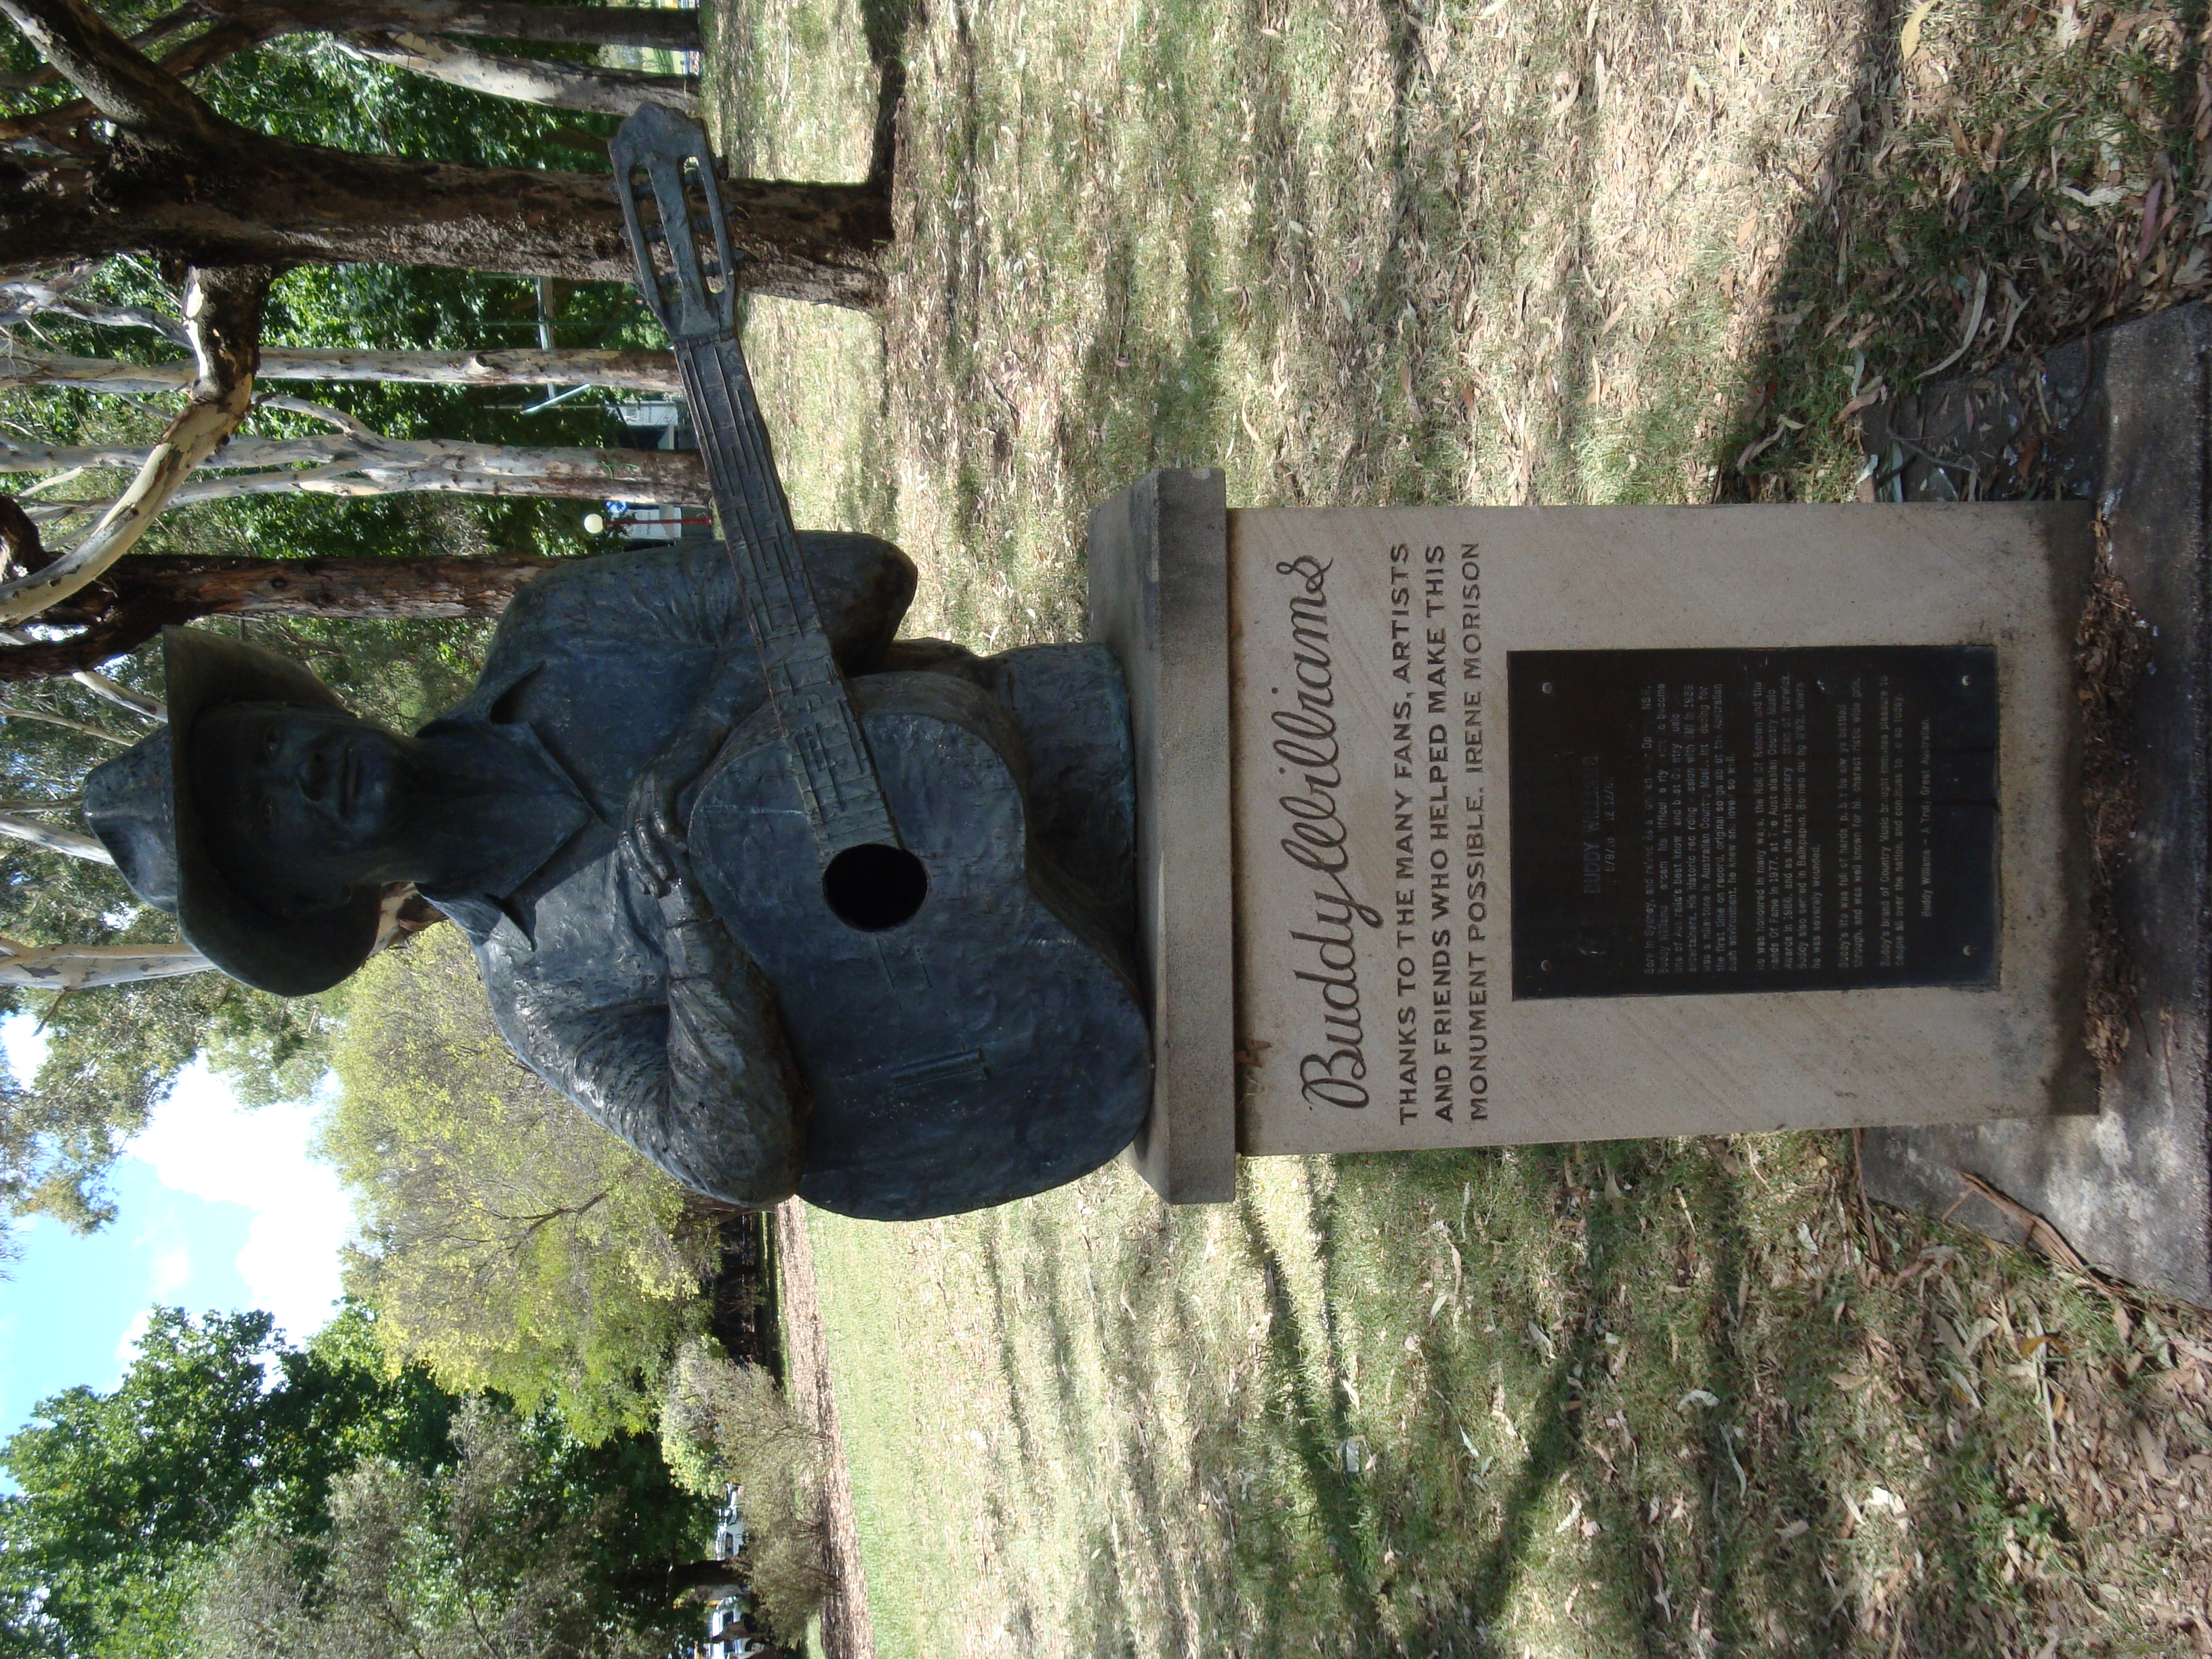 Buddy Williams' bust in Centennial Park